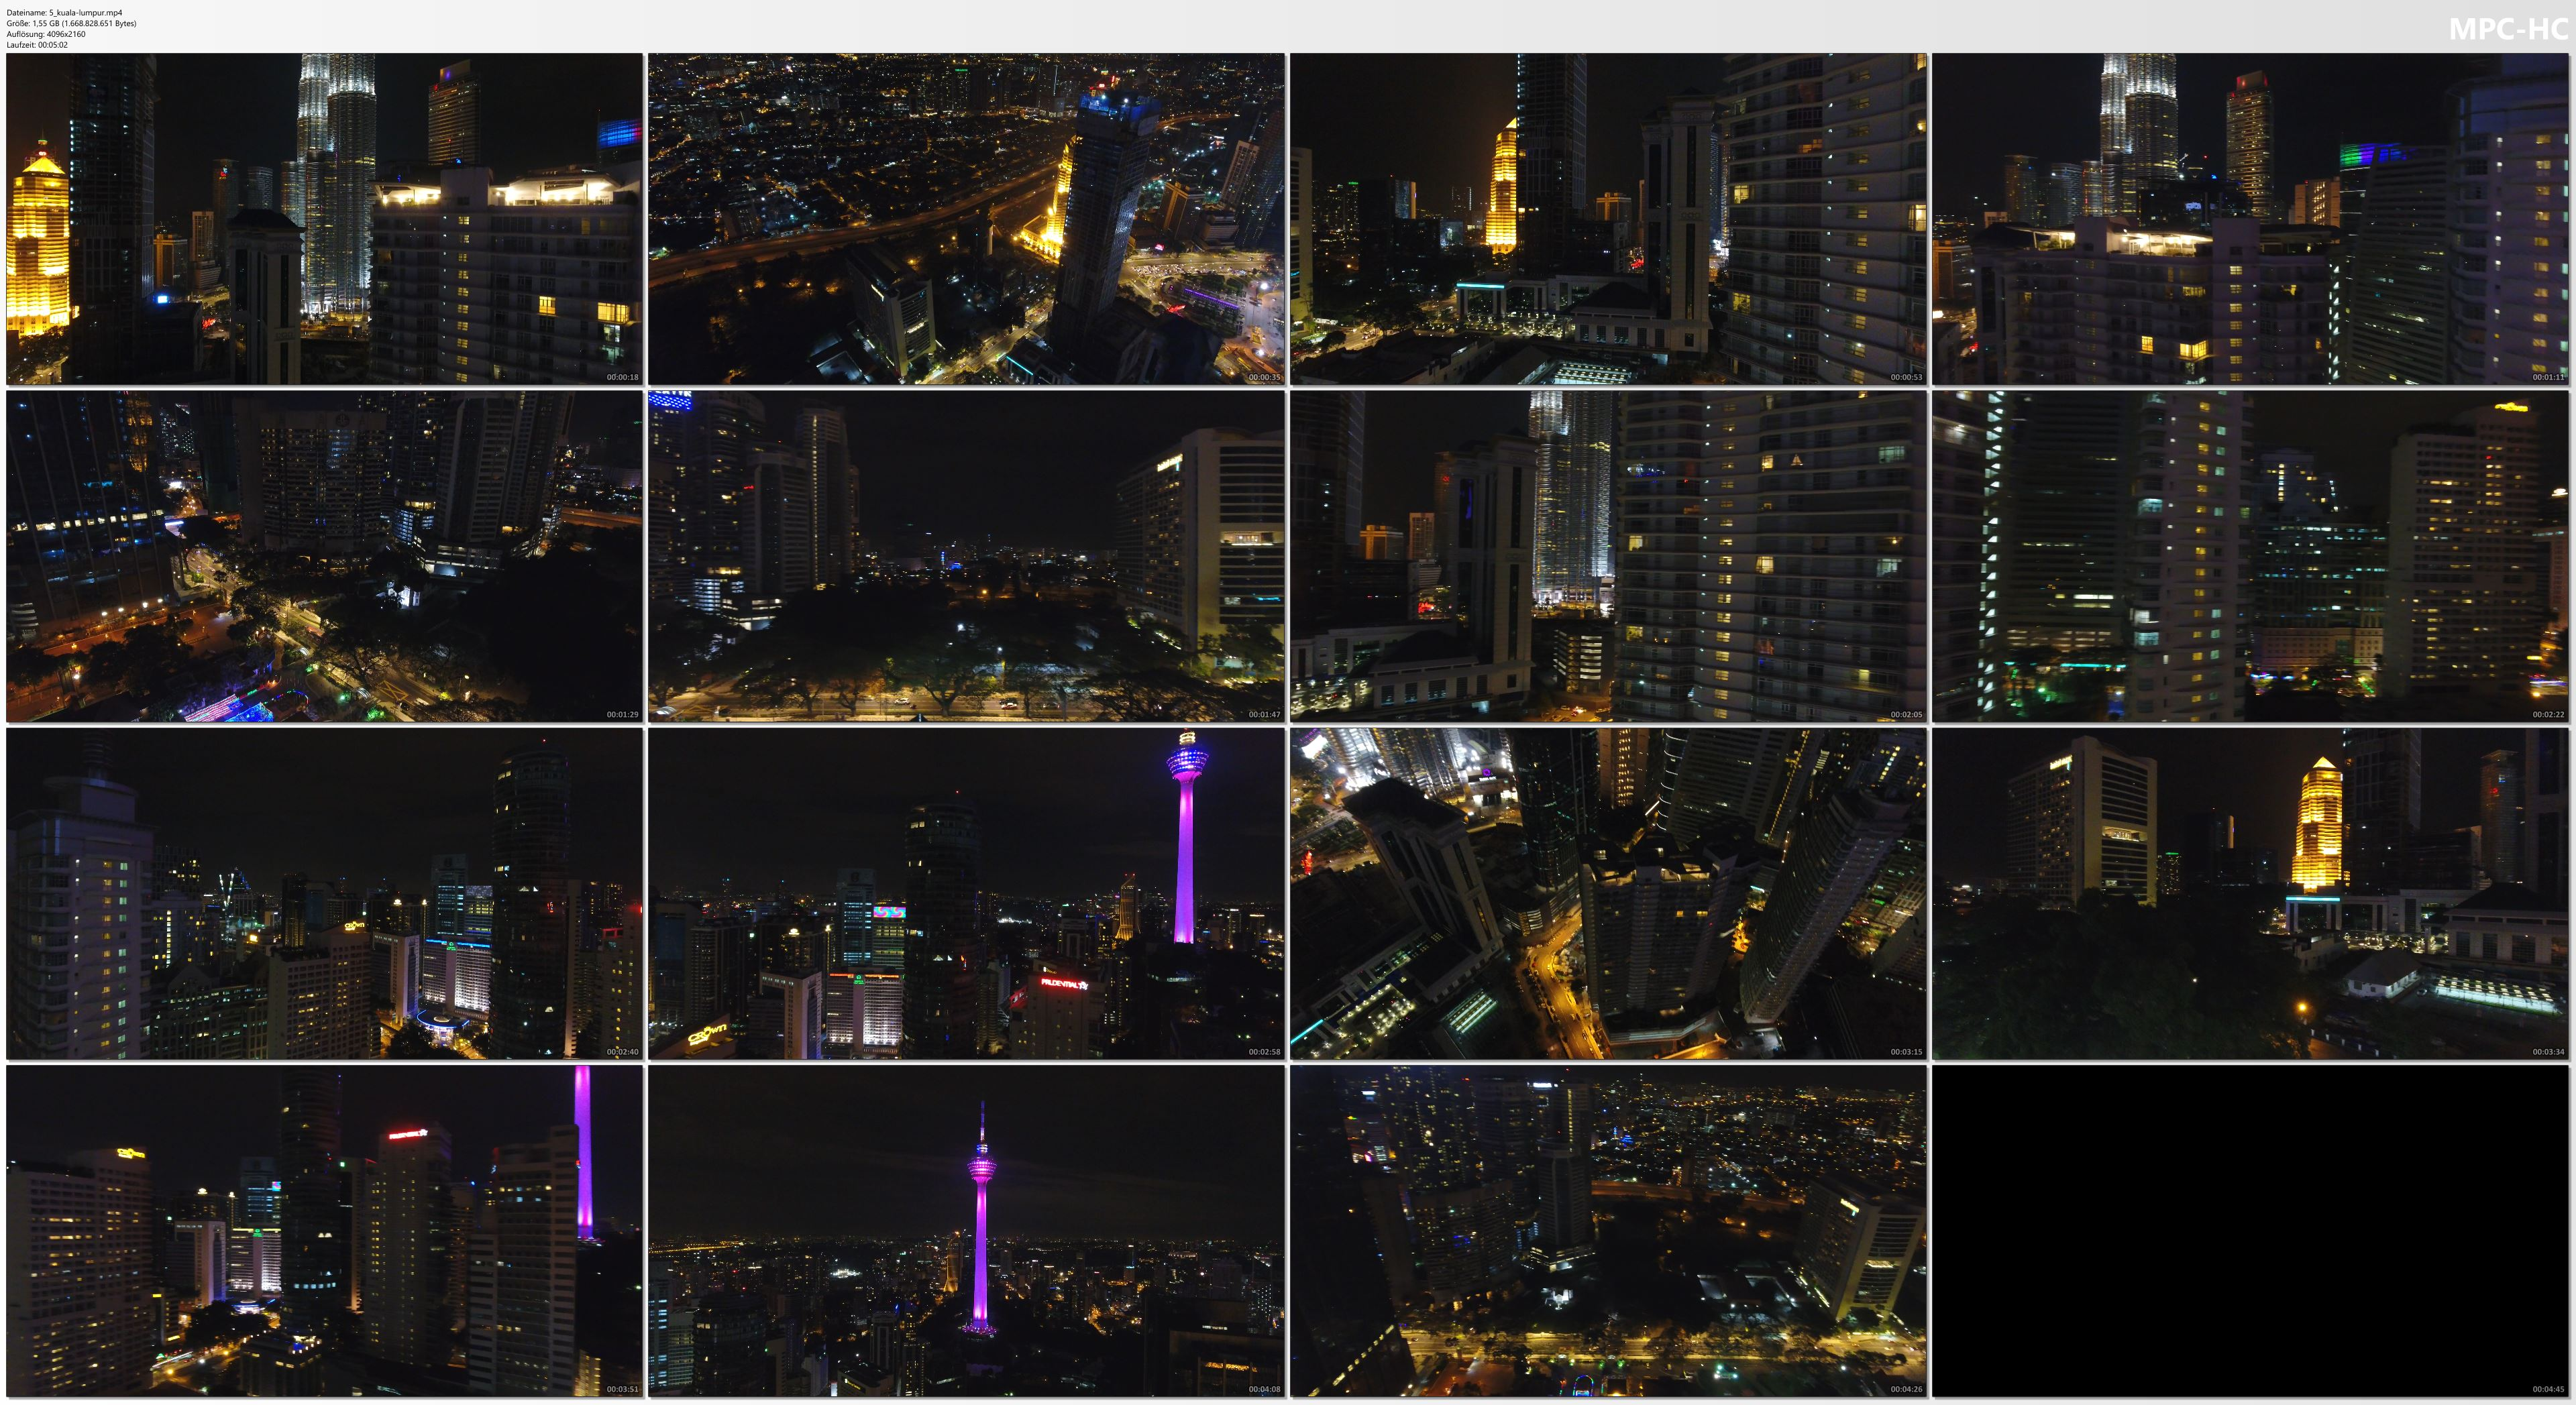 Drone Pictures from Video 4K Drone Footage KUALA LUMPUR by NIGHT [DJI Phantom 4]